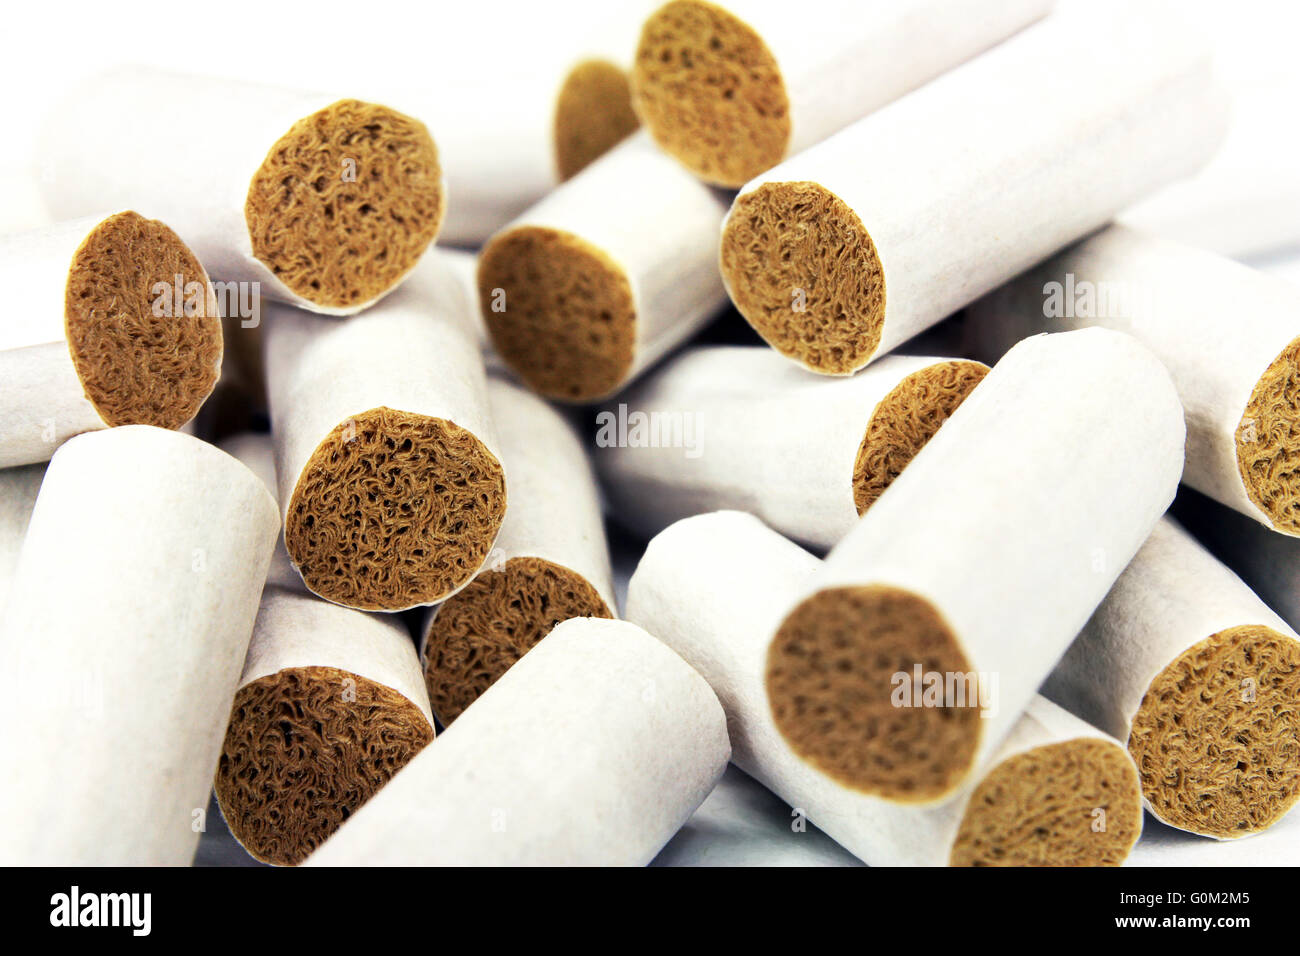 Buy cigarettes wilmington UK